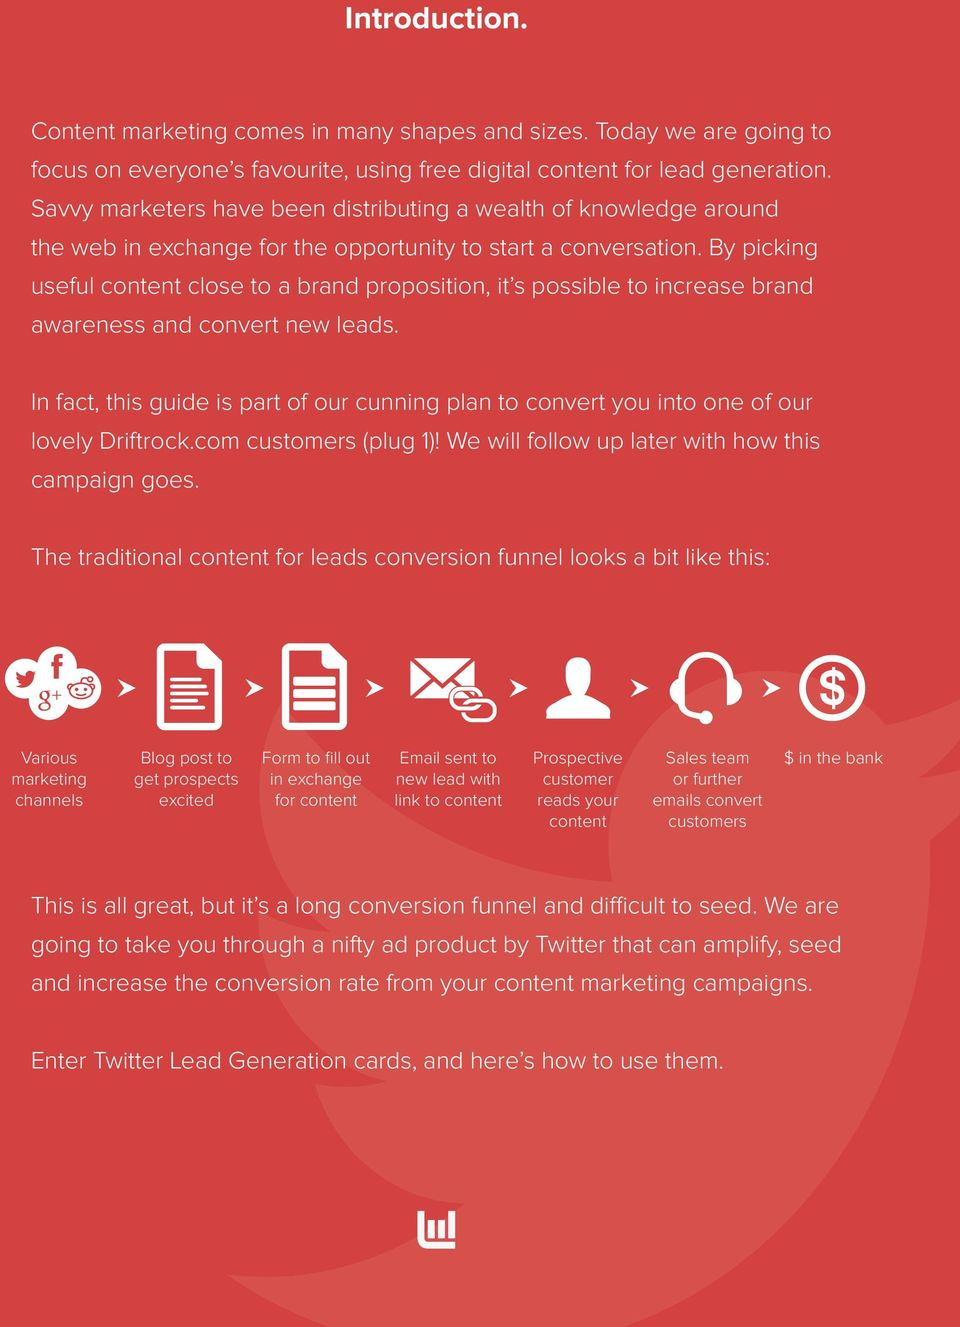 By picking useful content close to a brand proposition, it s possible to increase brand awareness and convert new leads.